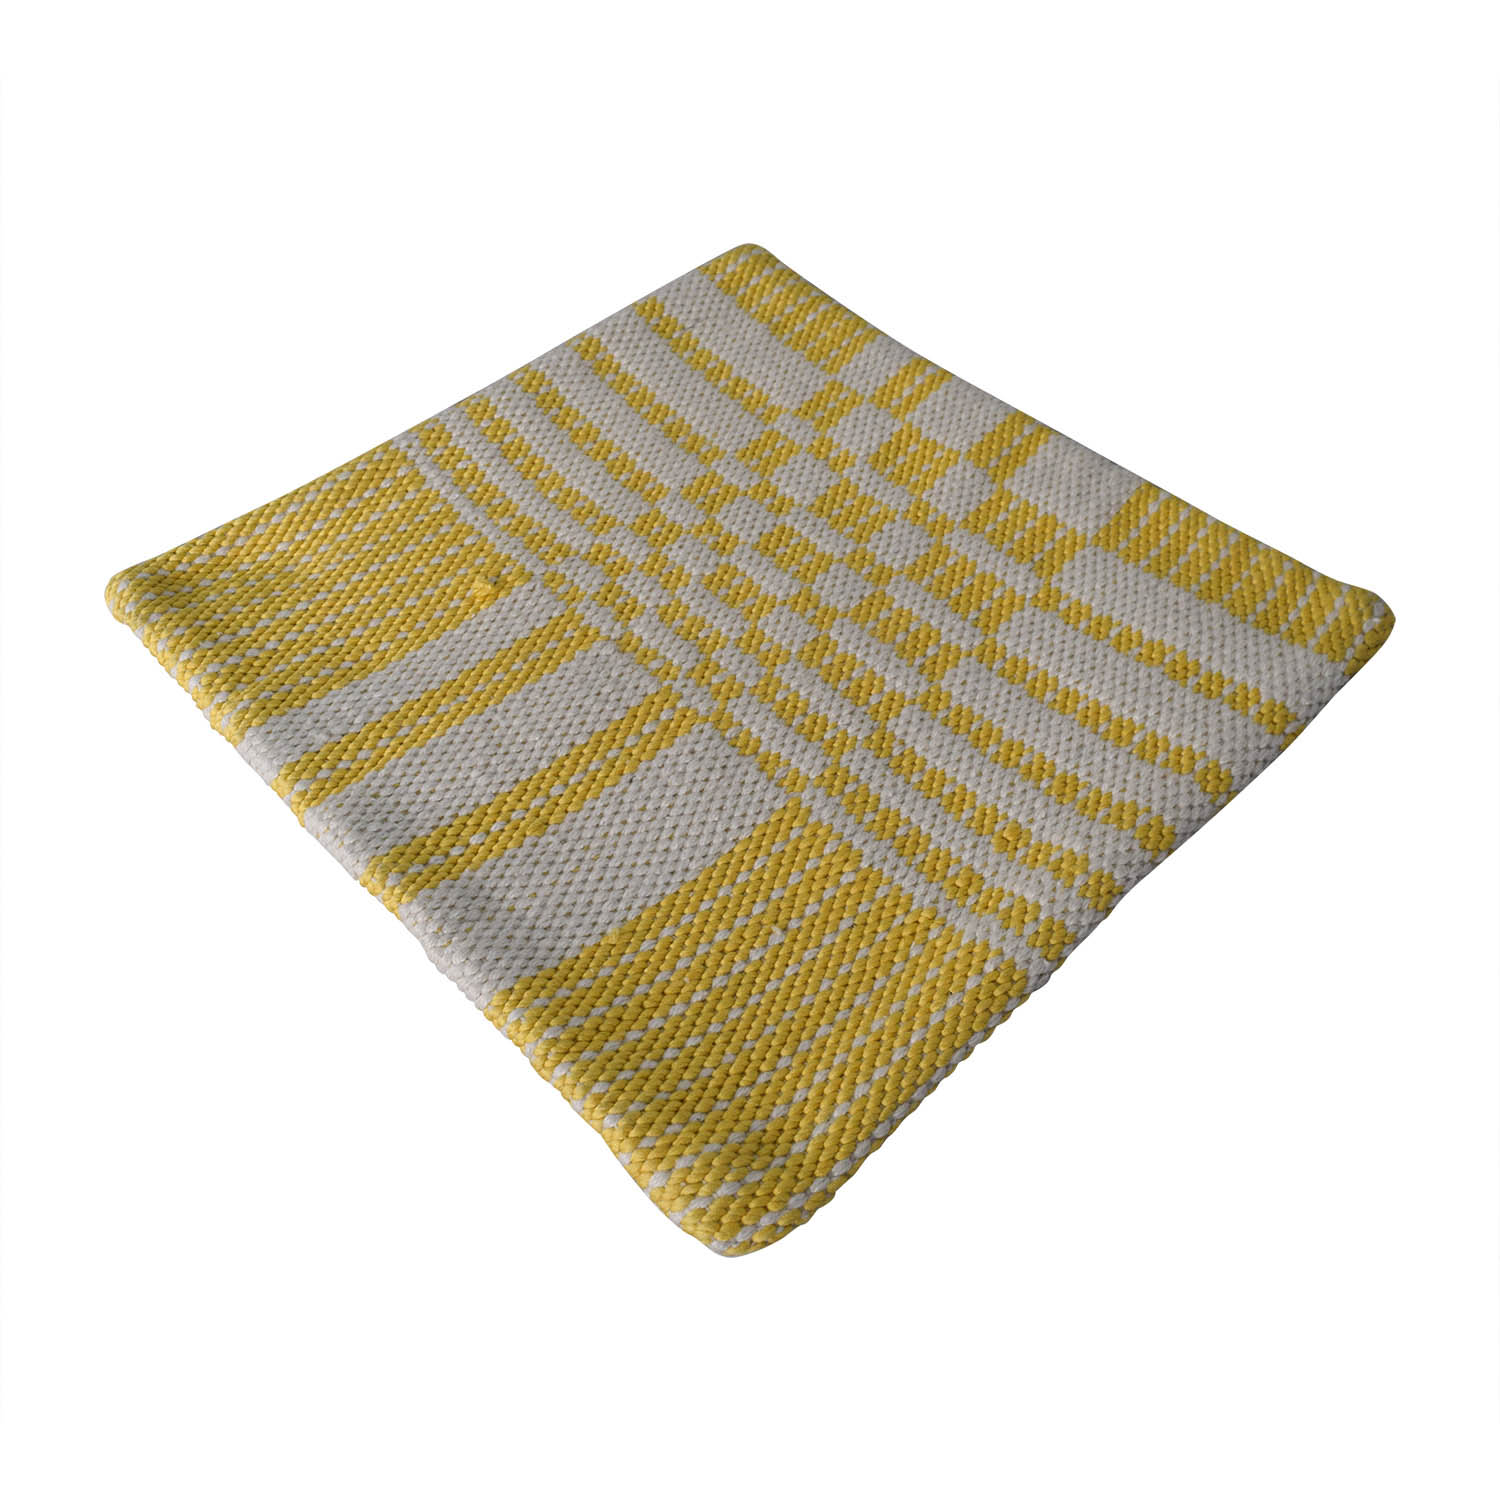 Obeetee Obeetee Geo Yellow Cushion Cover nj